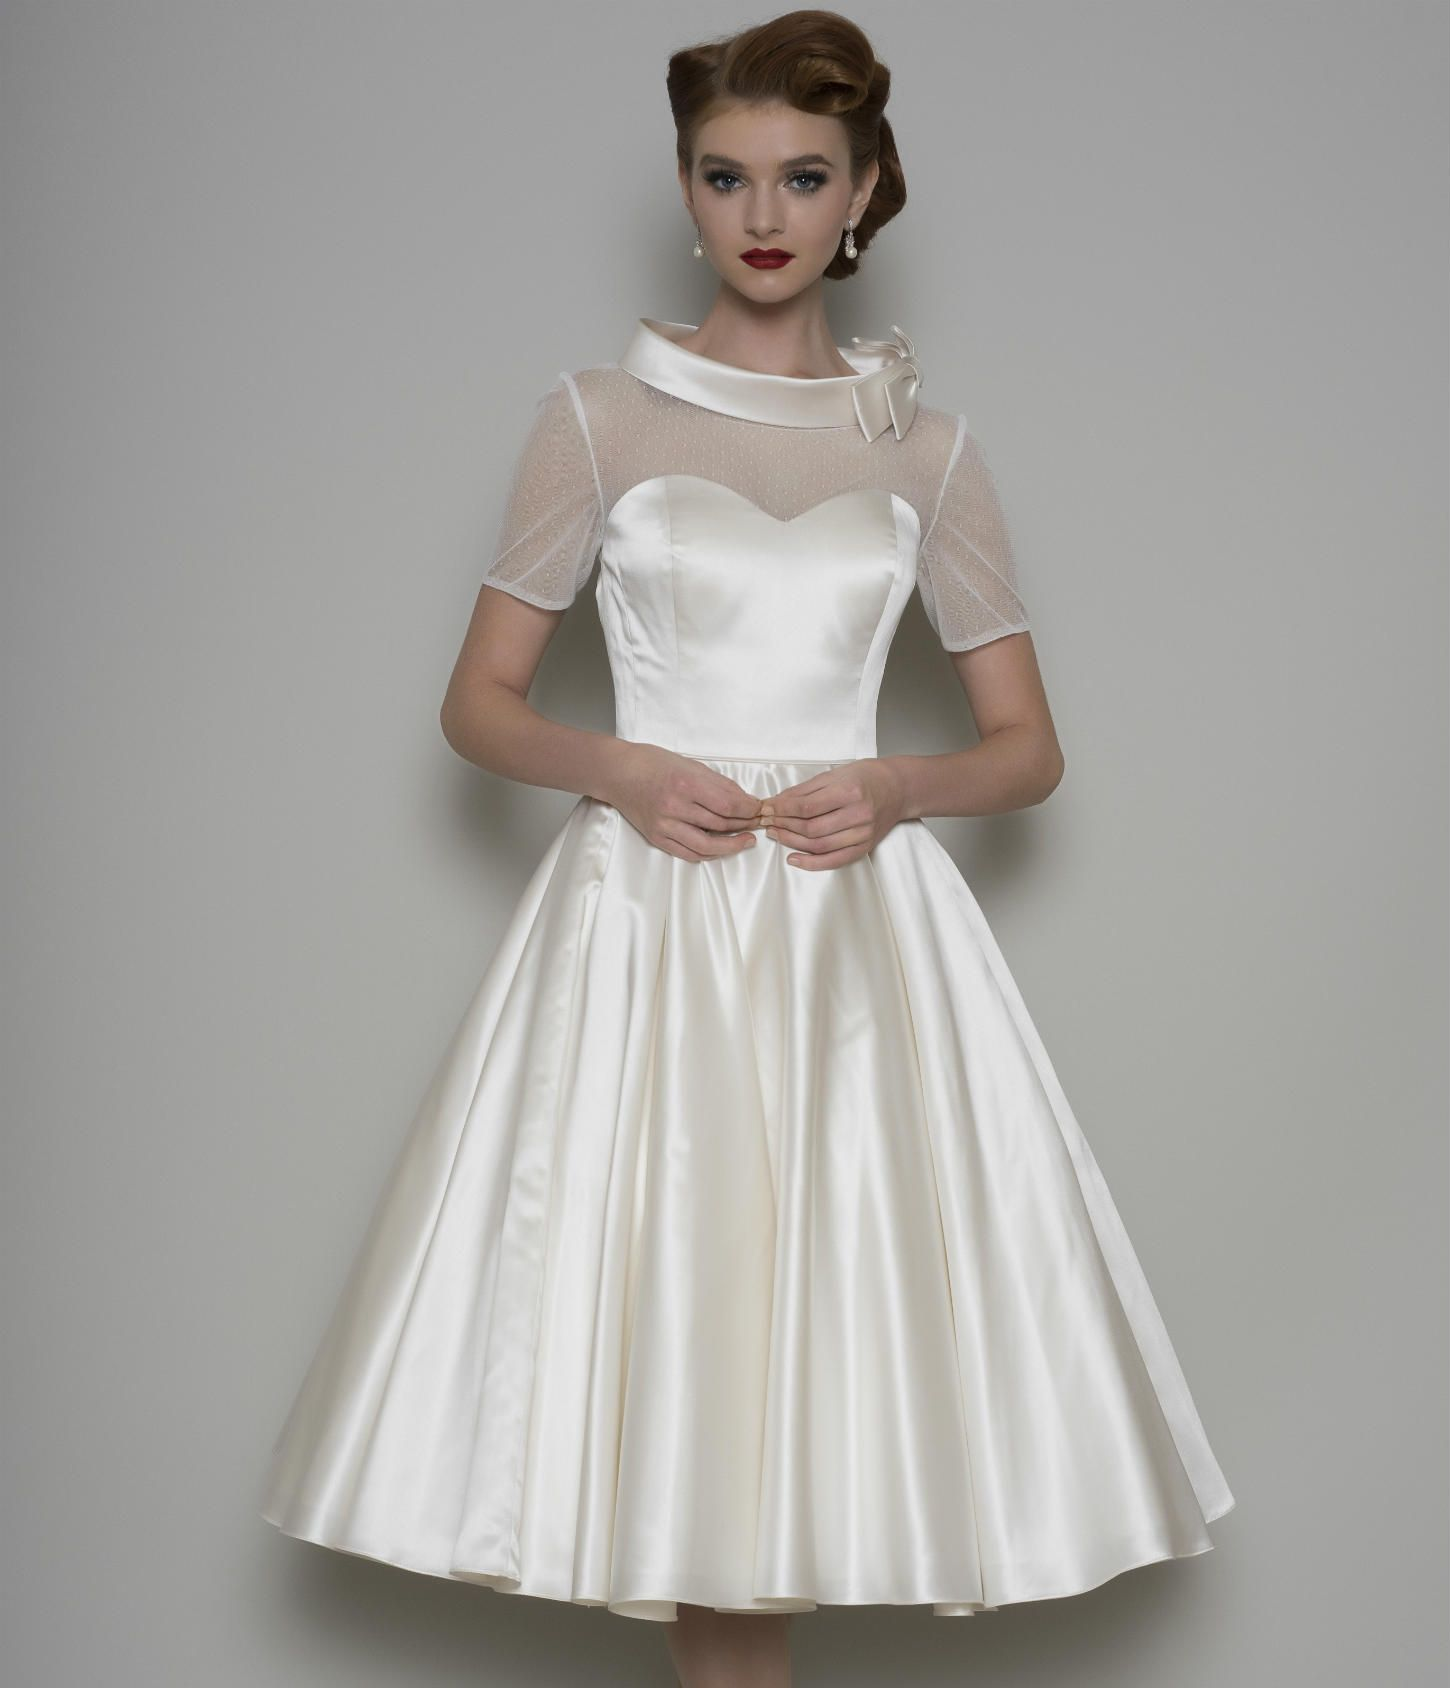 Lb hattie vintage inspired tea length satin dress with spotted